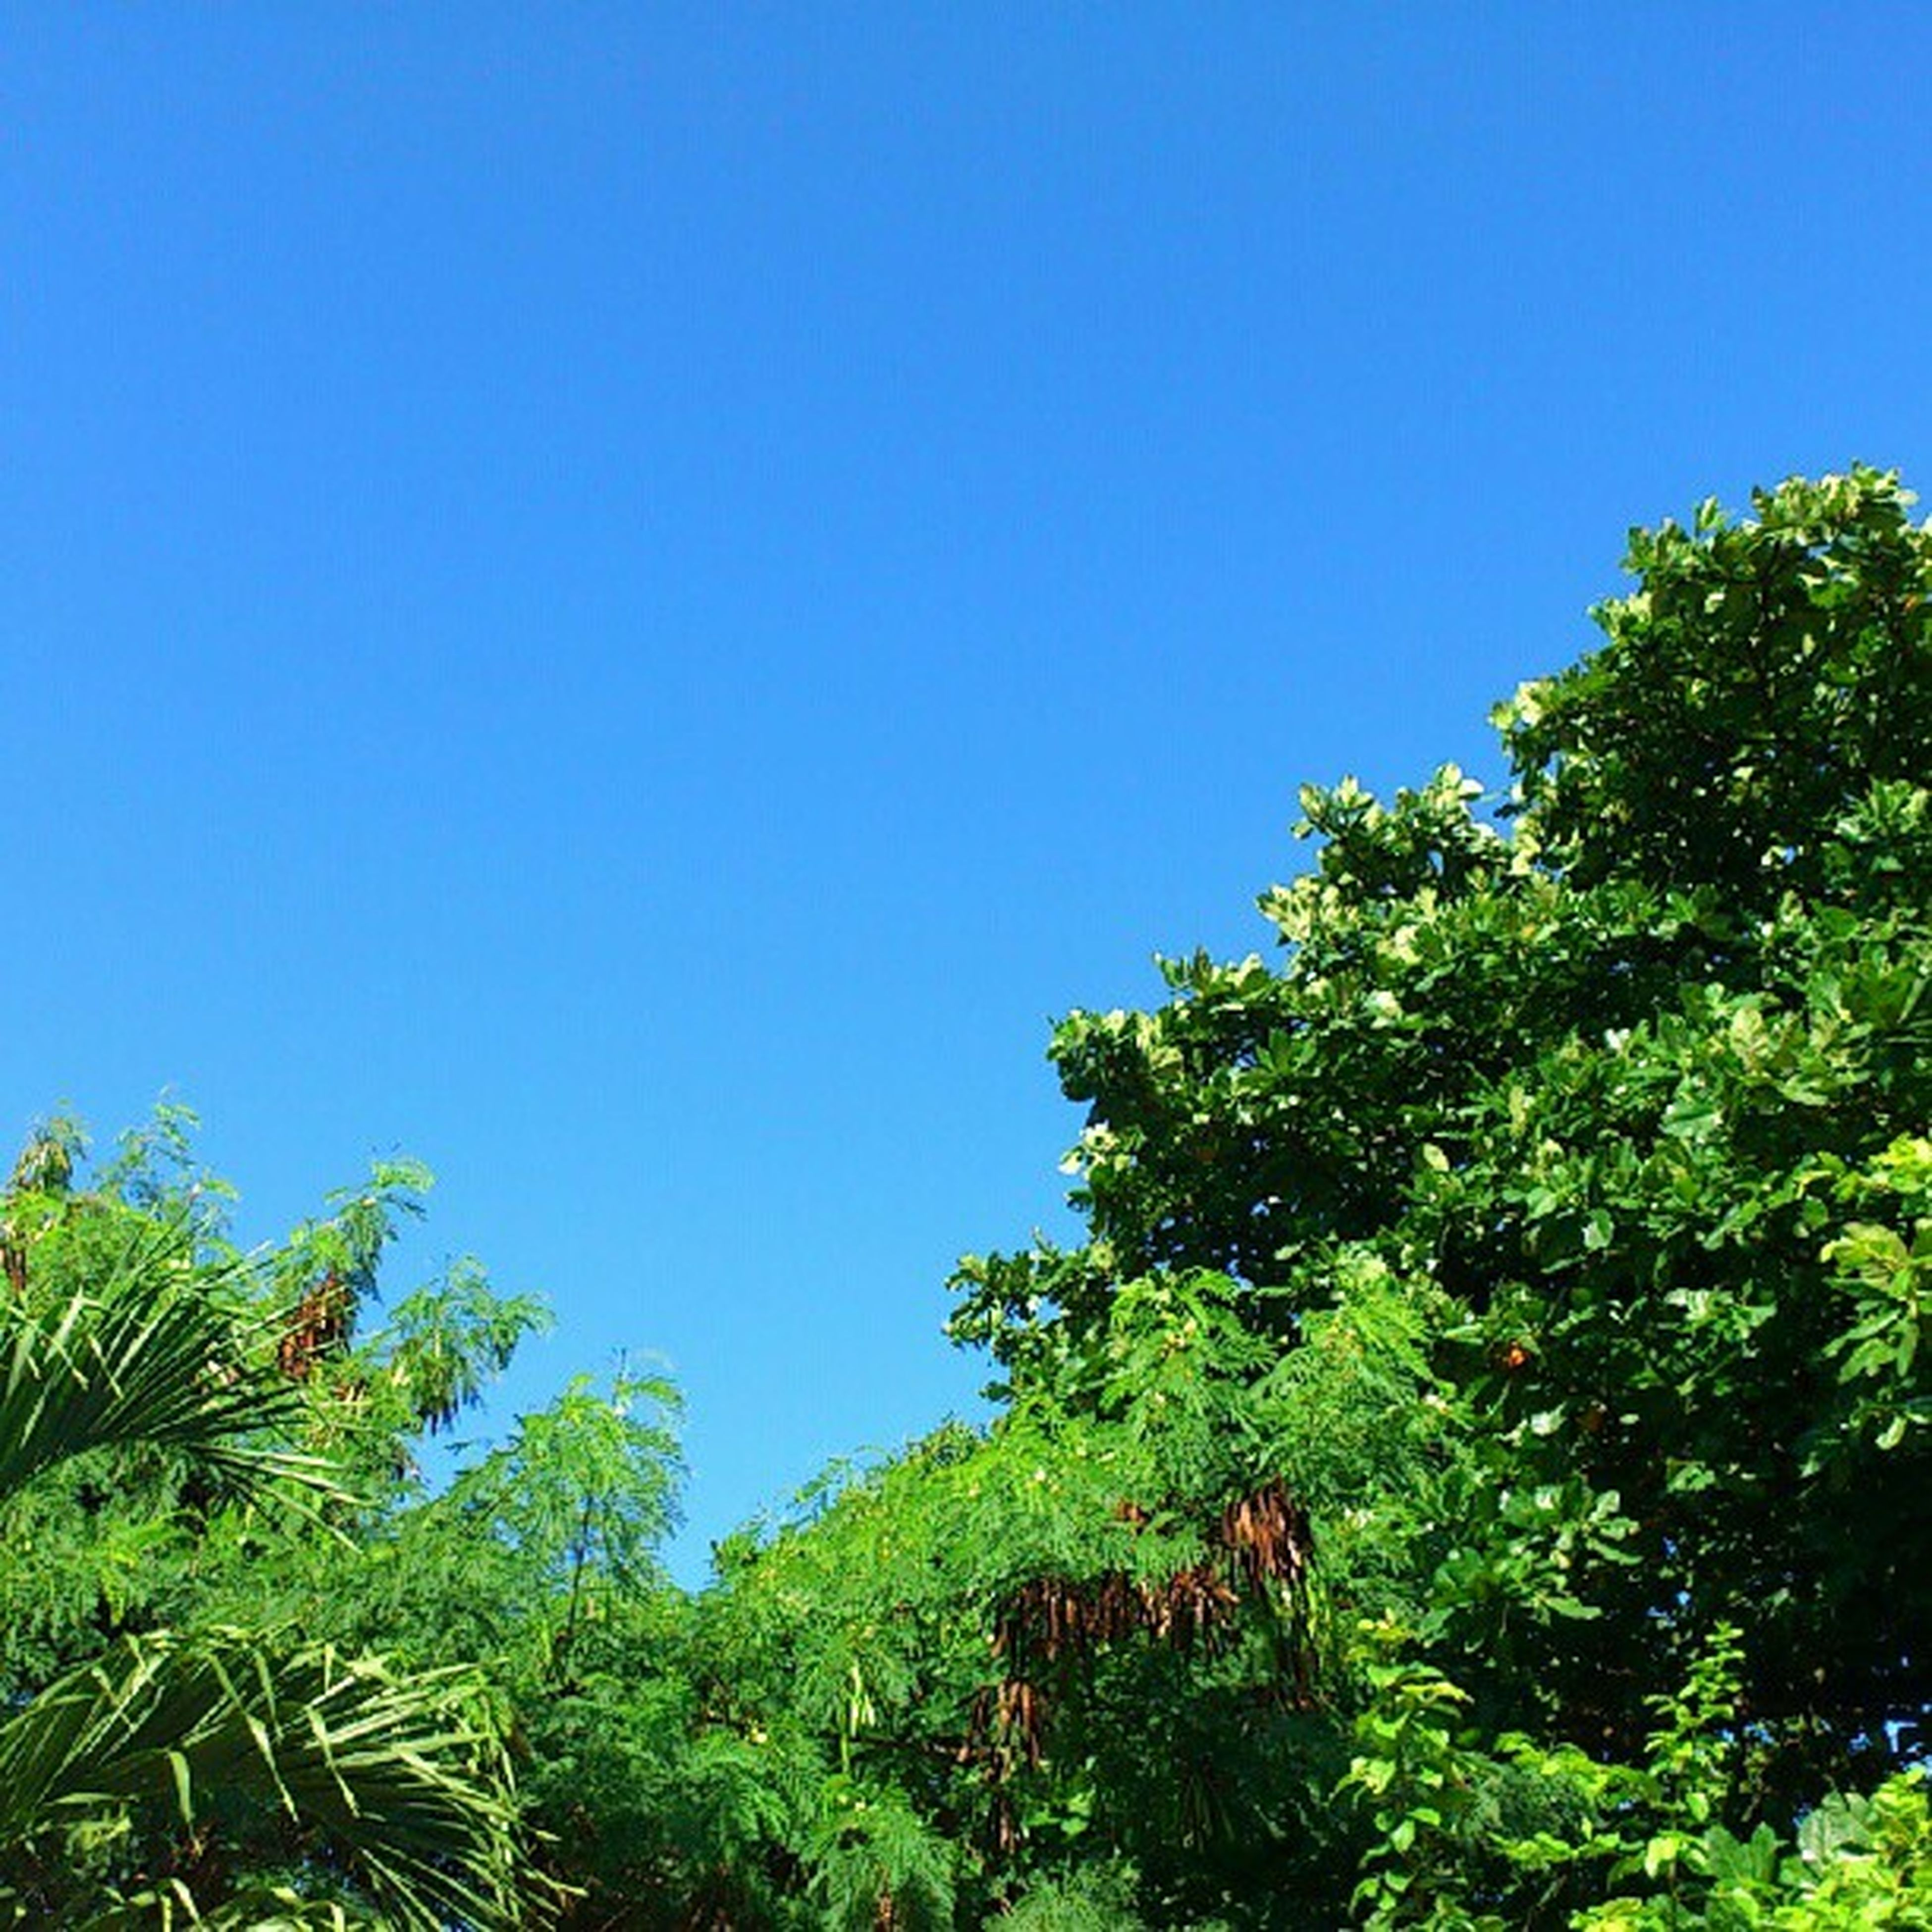 clear sky, tree, blue, copy space, low angle view, growth, green color, nature, tranquility, plant, beauty in nature, green, tranquil scene, animal themes, day, sunlight, one animal, outdoors, lush foliage, scenics